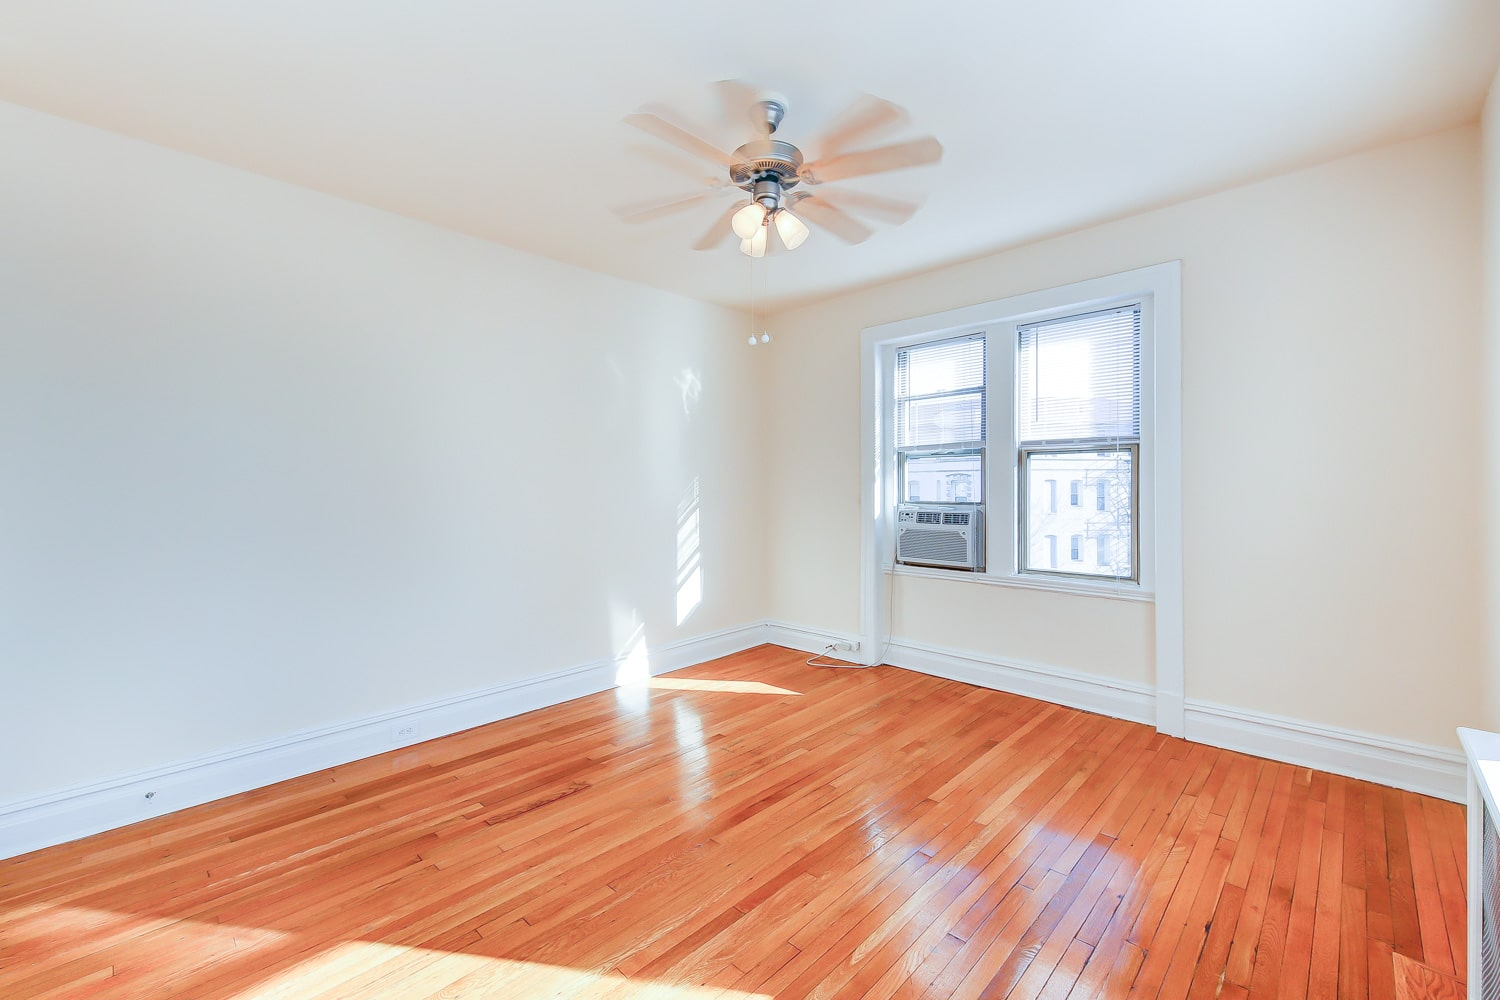 Chatham-courts-apartments-washington-dc-bedroom2-min